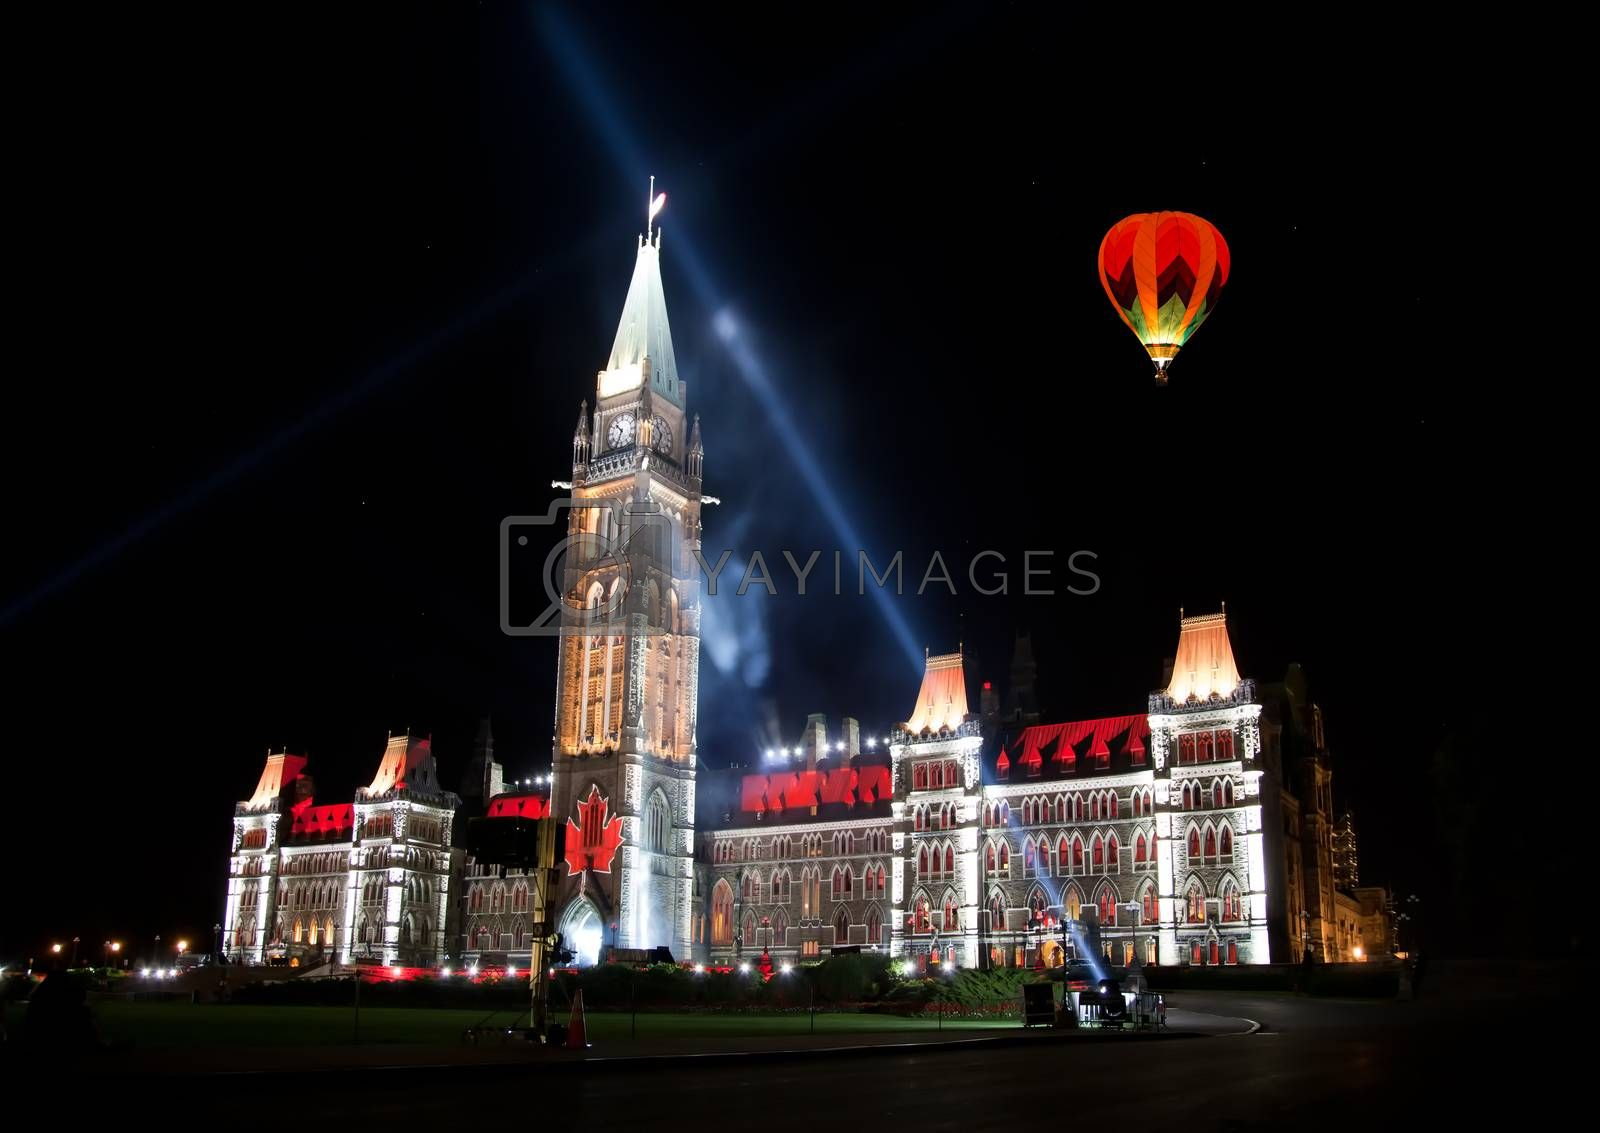 The beautiful light show projected on the parliament building